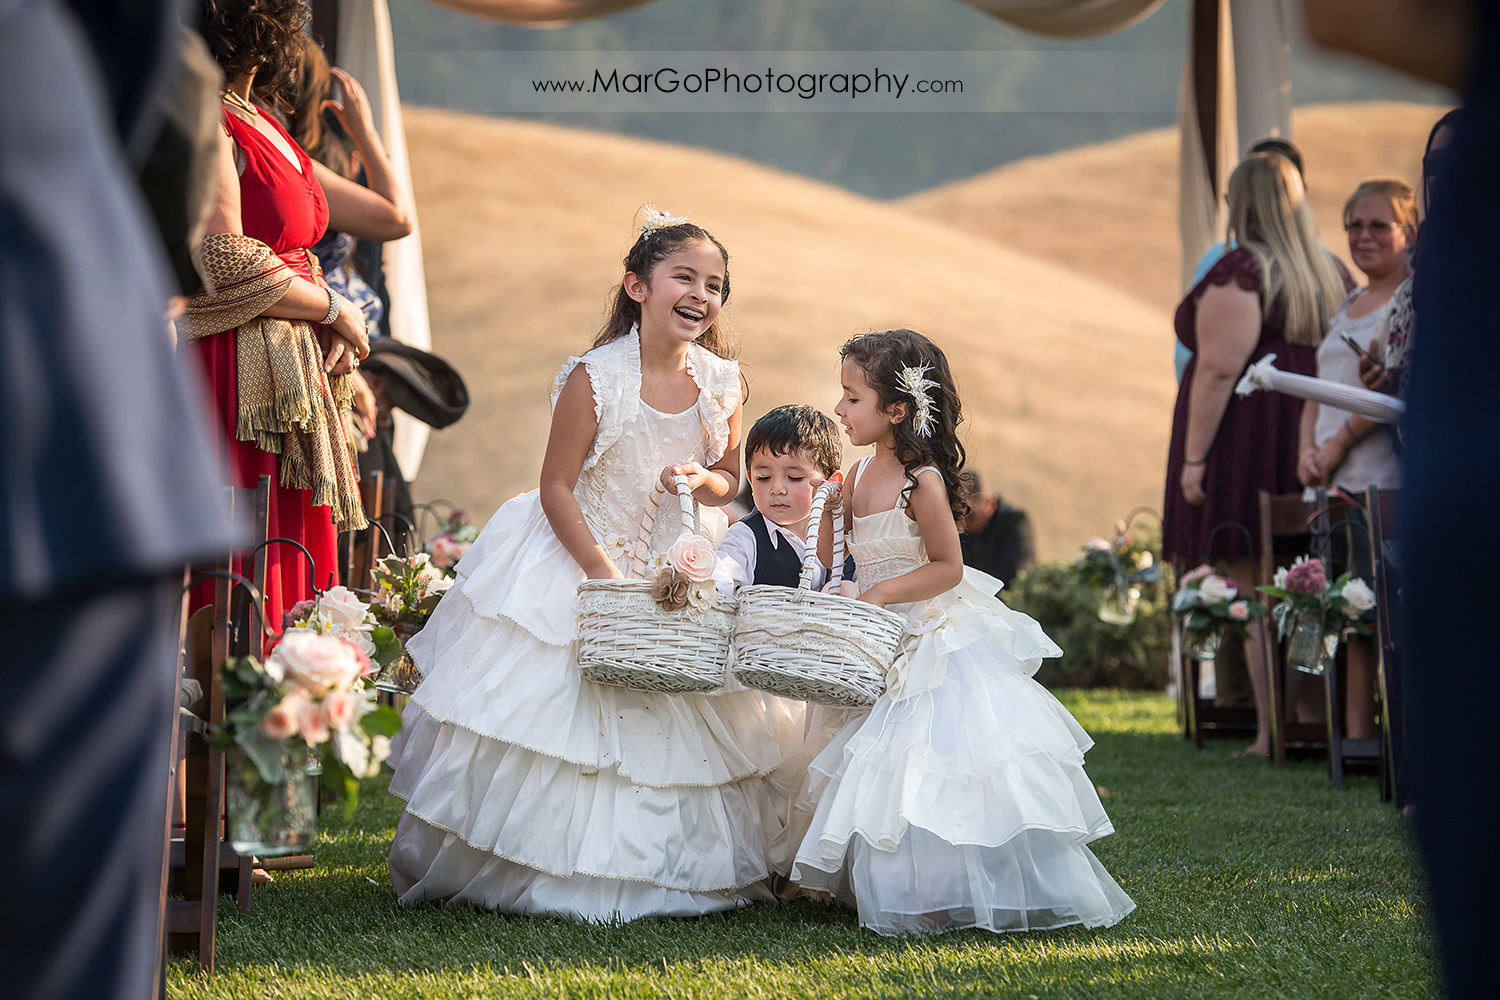 flower girls walking down the aisle during wedding ceremony at Taber Ranch Vineyards